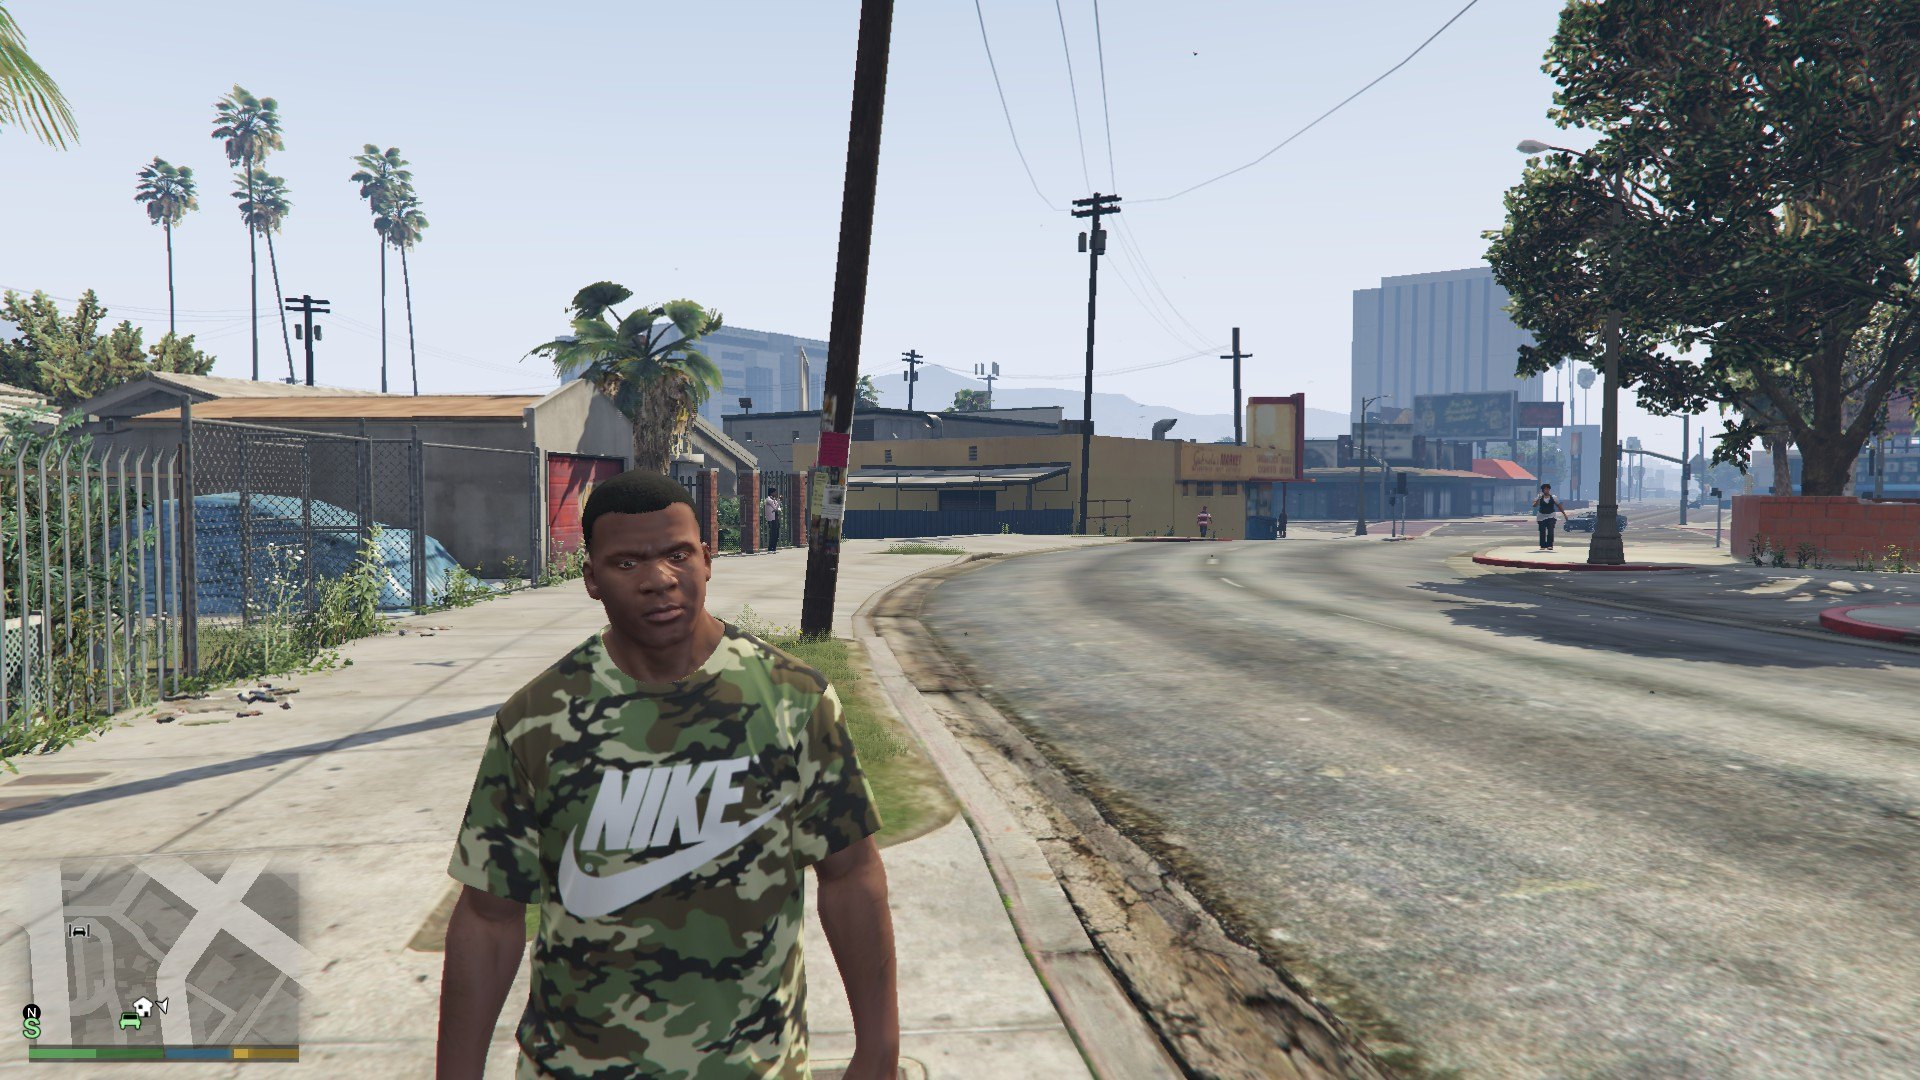 Nike Camo T-Shirt For Franklin GTA5 Mods (9)